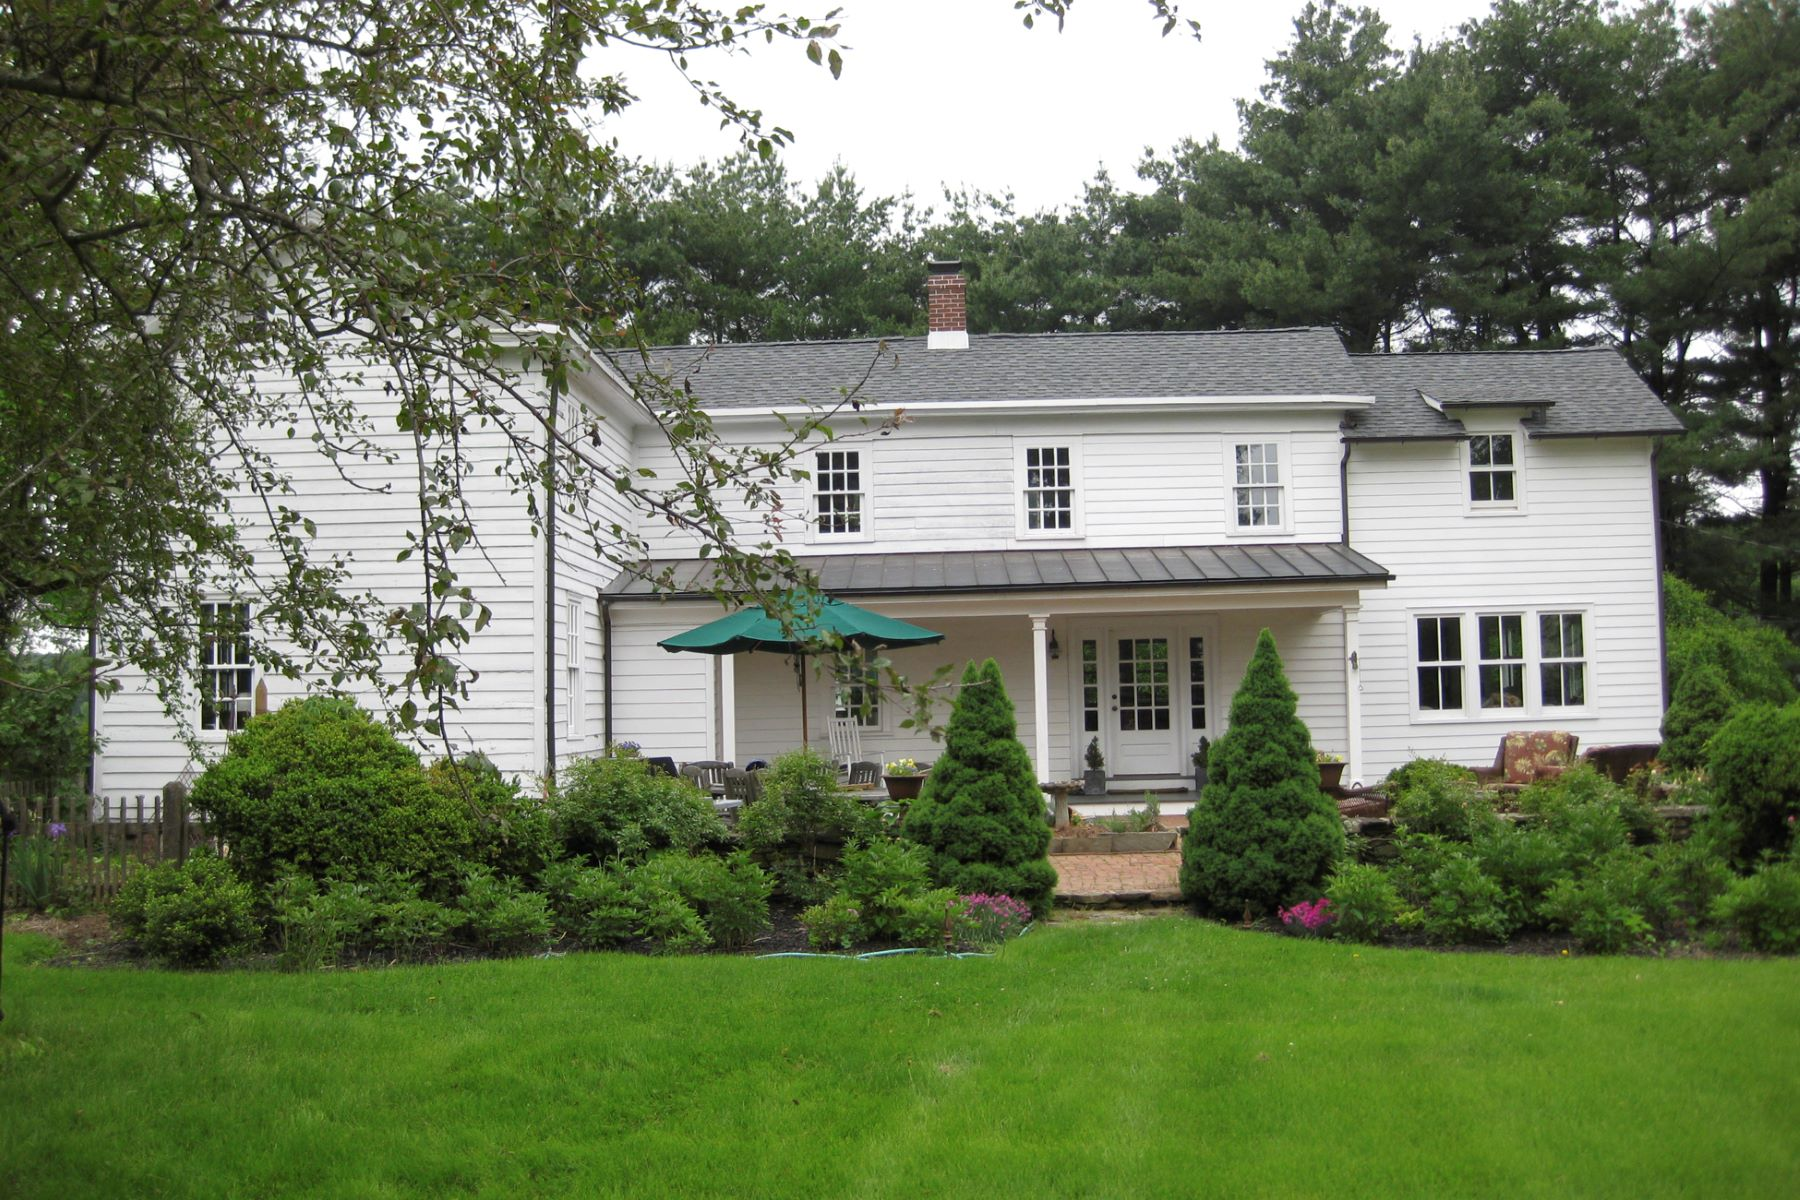 Maison unifamiliale pour l Vente à Meticulous Colonial Farmhouse c 1840 168 Plainsboro Road Cranbury, New Jersey 08512 États-Unis